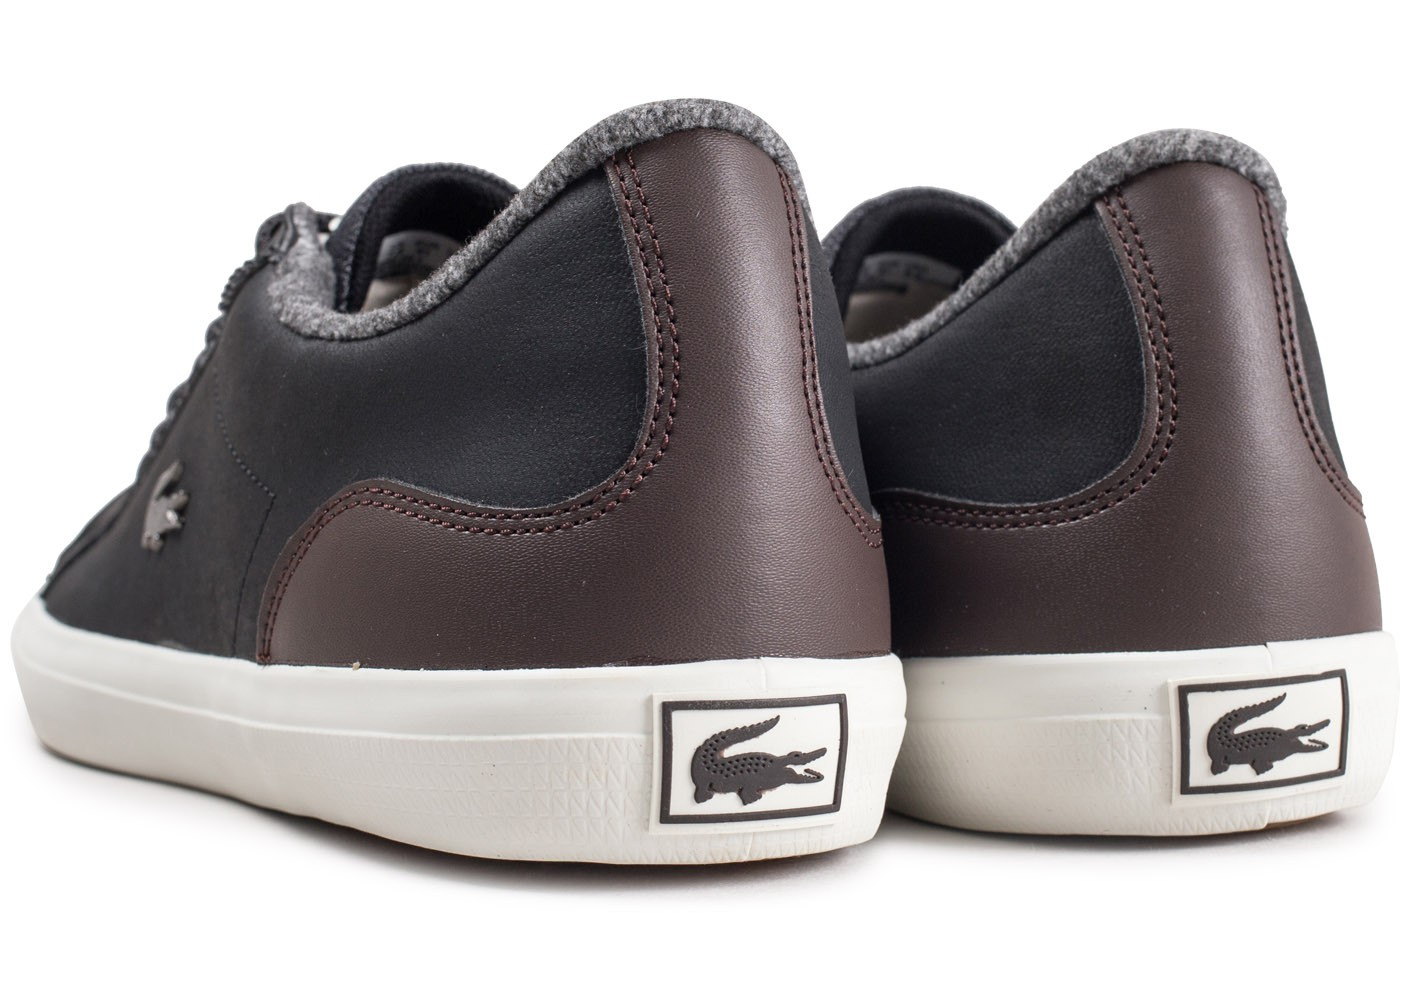 lacoste lerond 318 noires fourr es chaussures baskets homme chausport. Black Bedroom Furniture Sets. Home Design Ideas